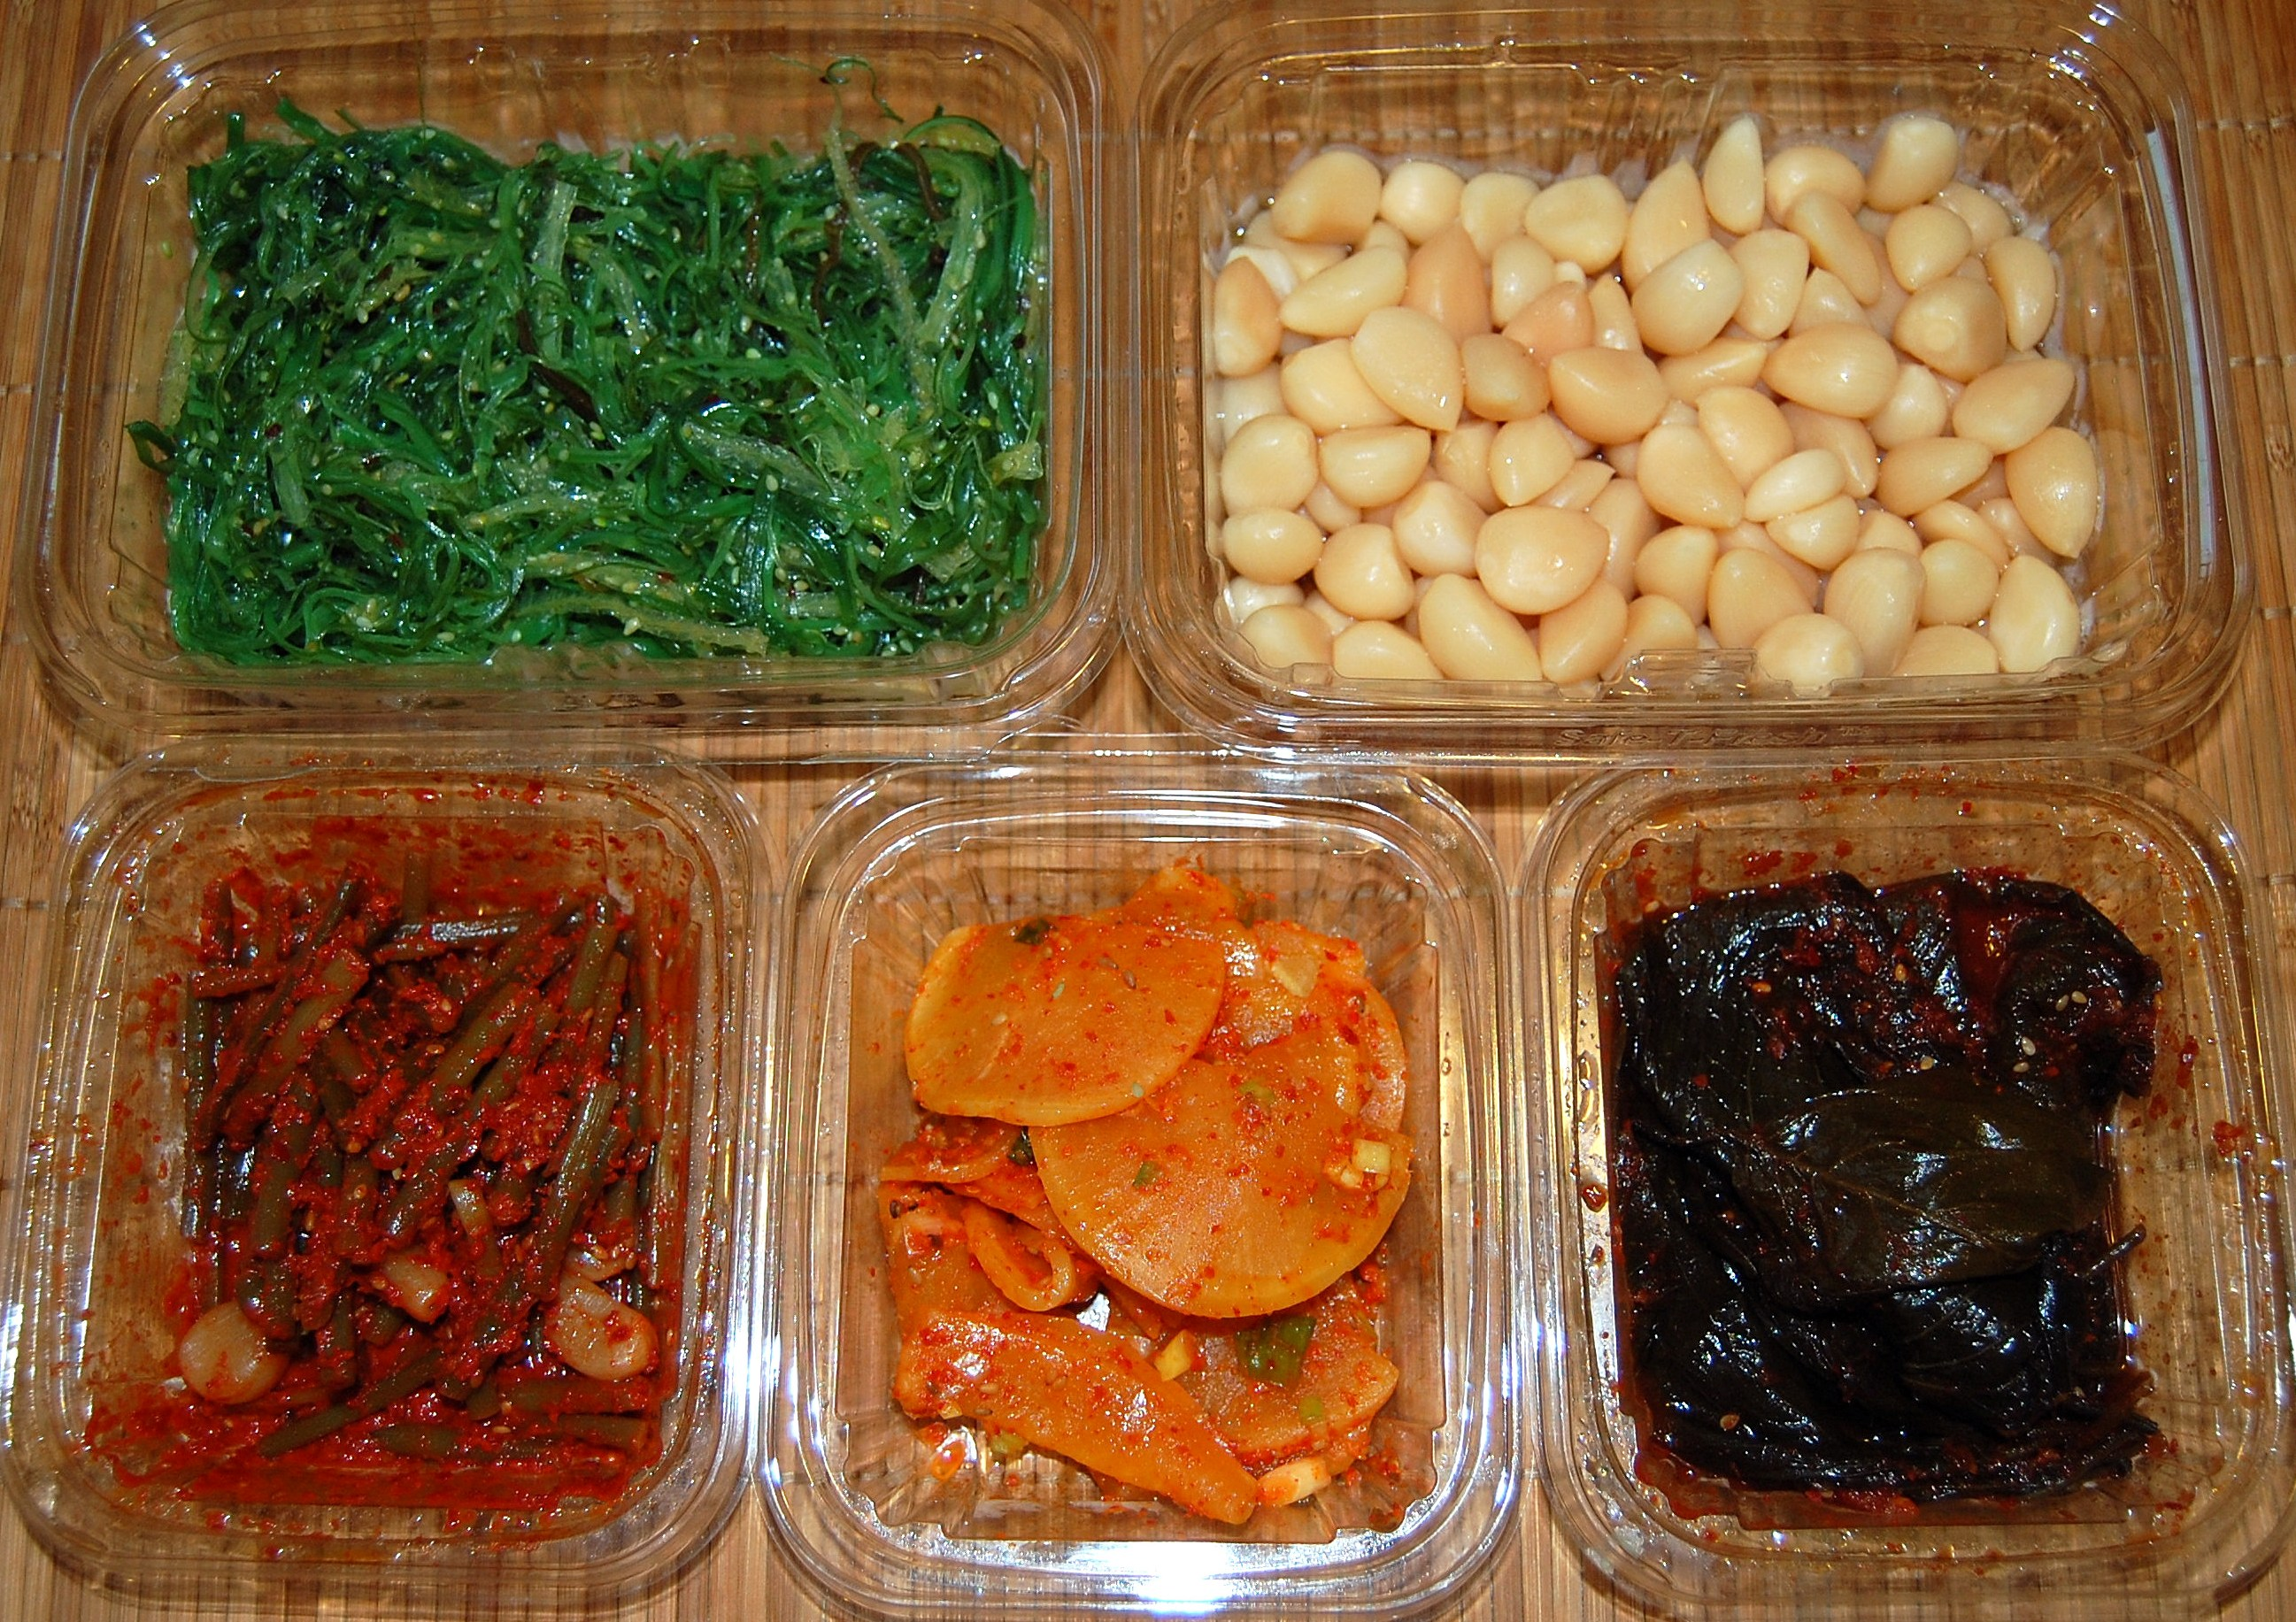 ... chili powder kimchi for example this korean chili powder 고추 가루